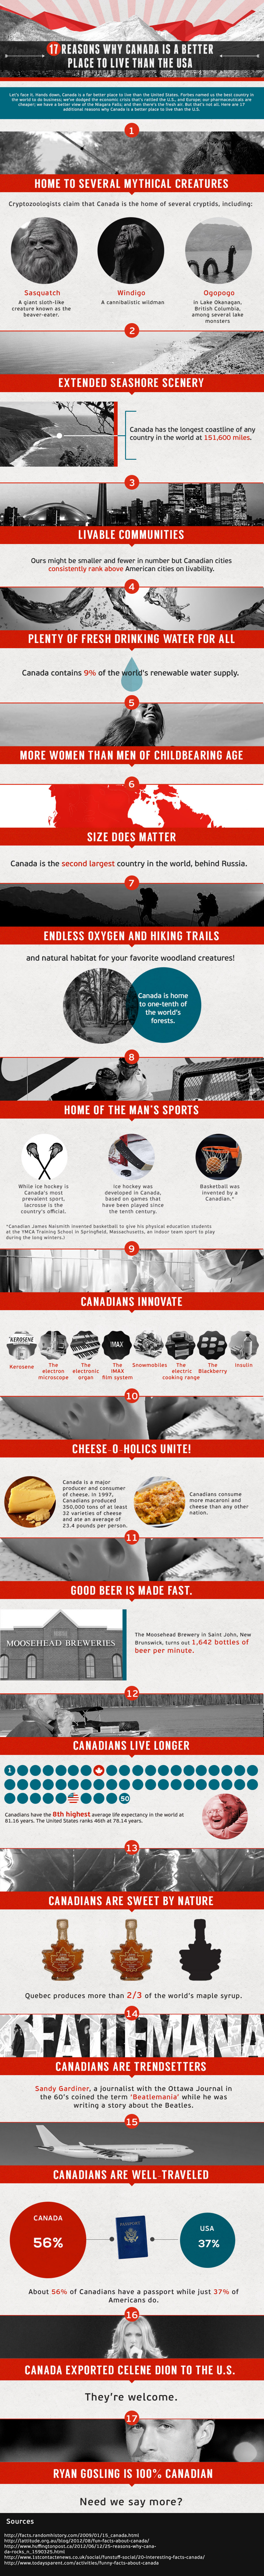 17 Reasons why Canada is a better place to live than the USA  Infographic